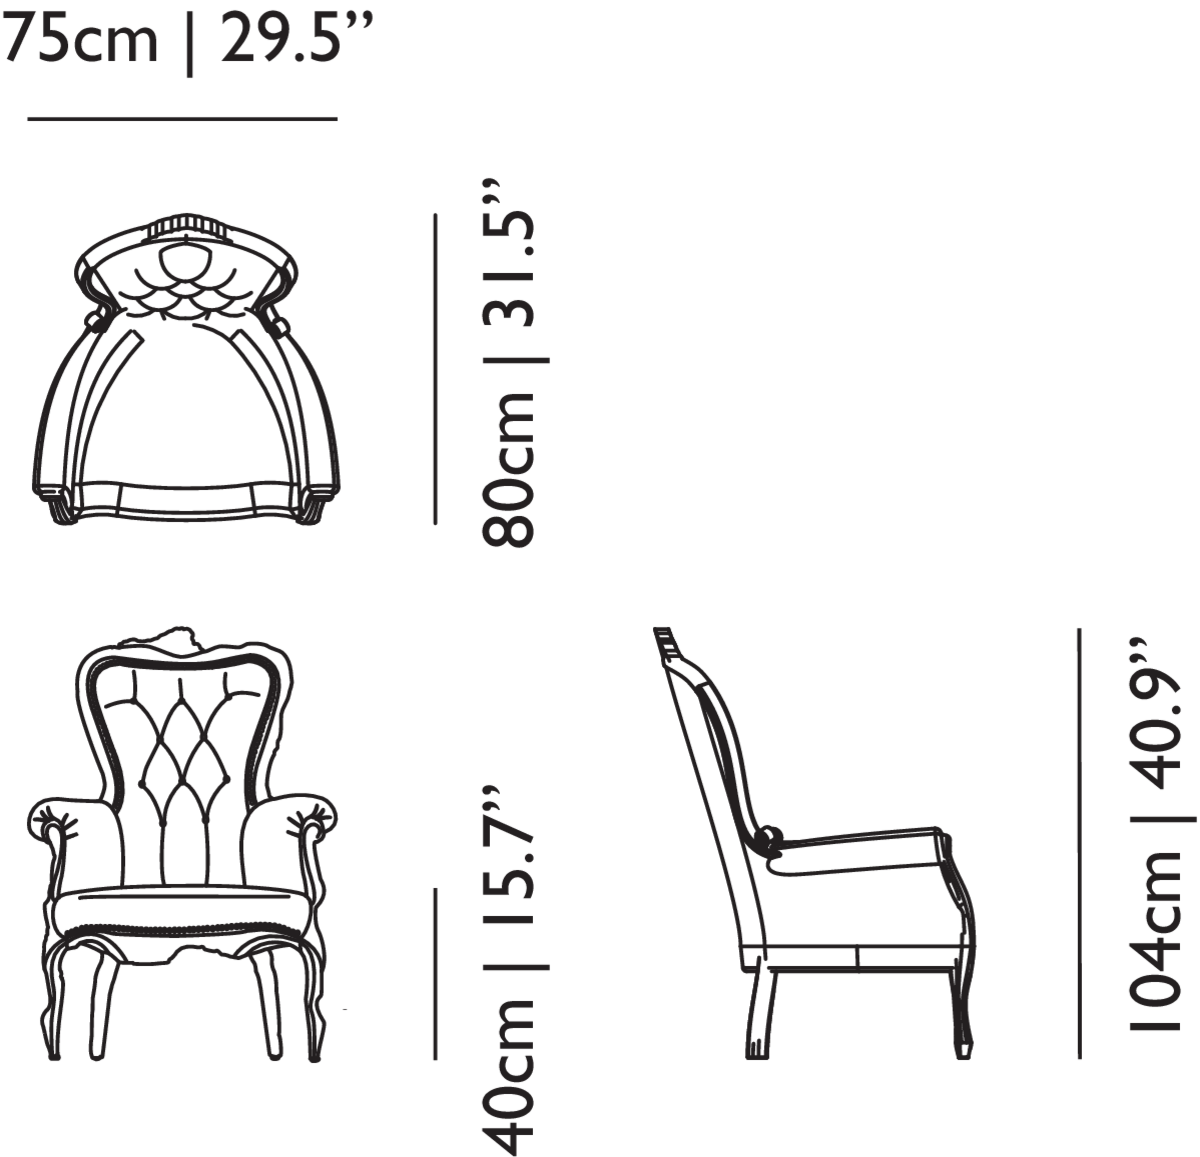 Smoke Armchair linedrawing with dimensions